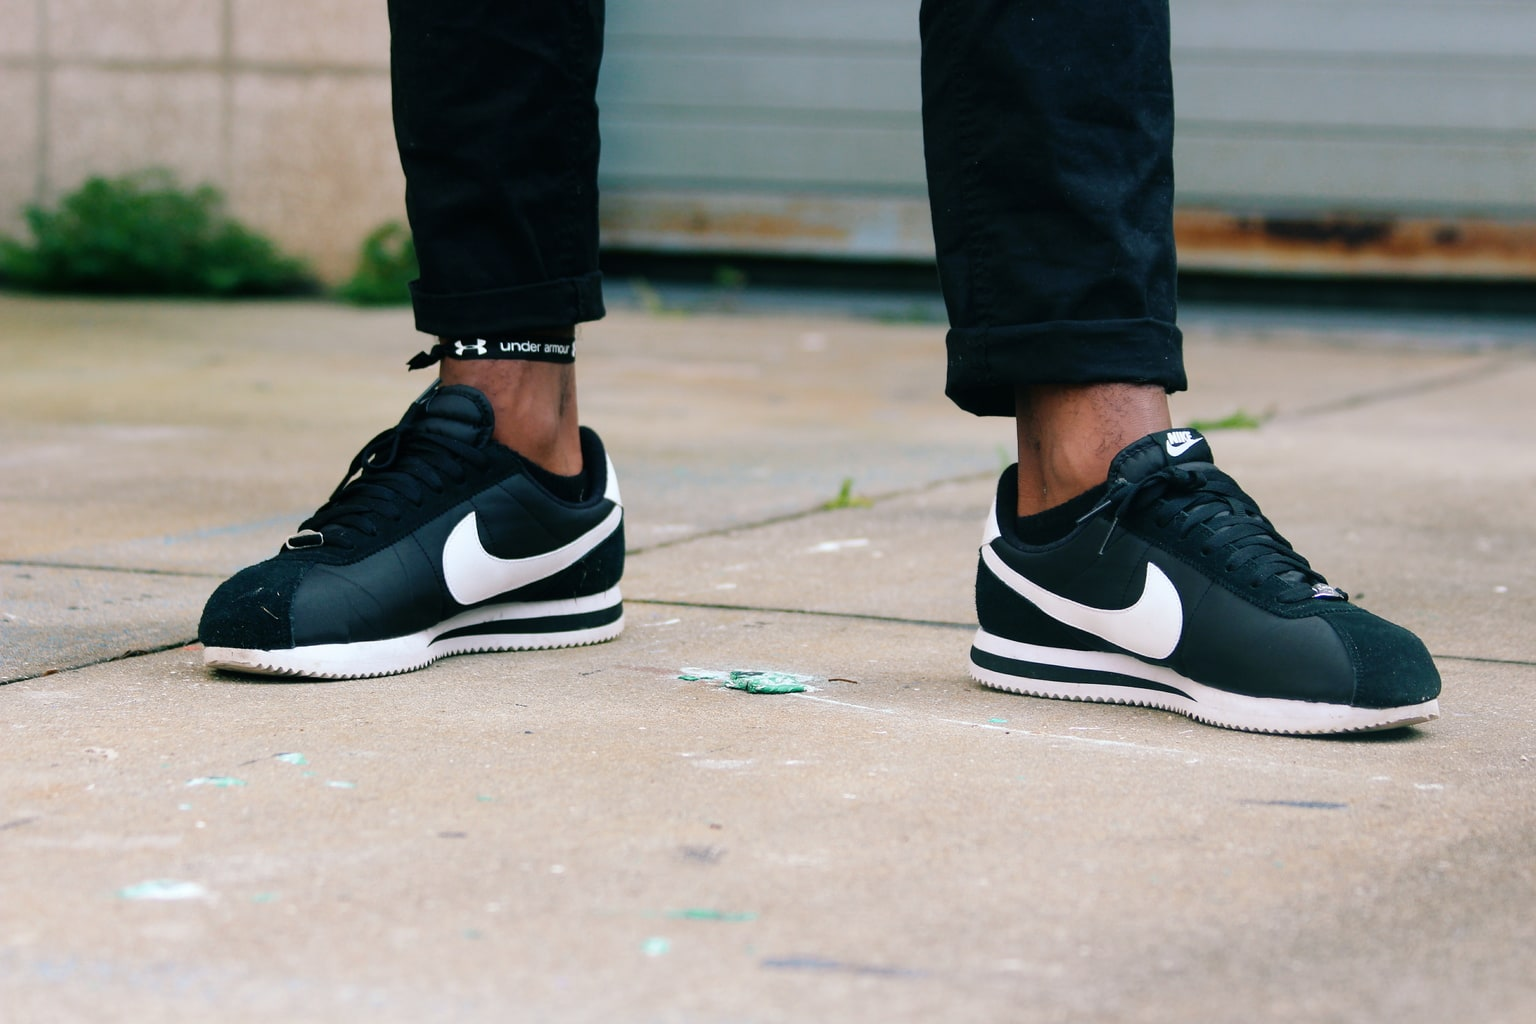 University of South Florida student wears a pair of black and white Nike Cortez lace up sneakers.